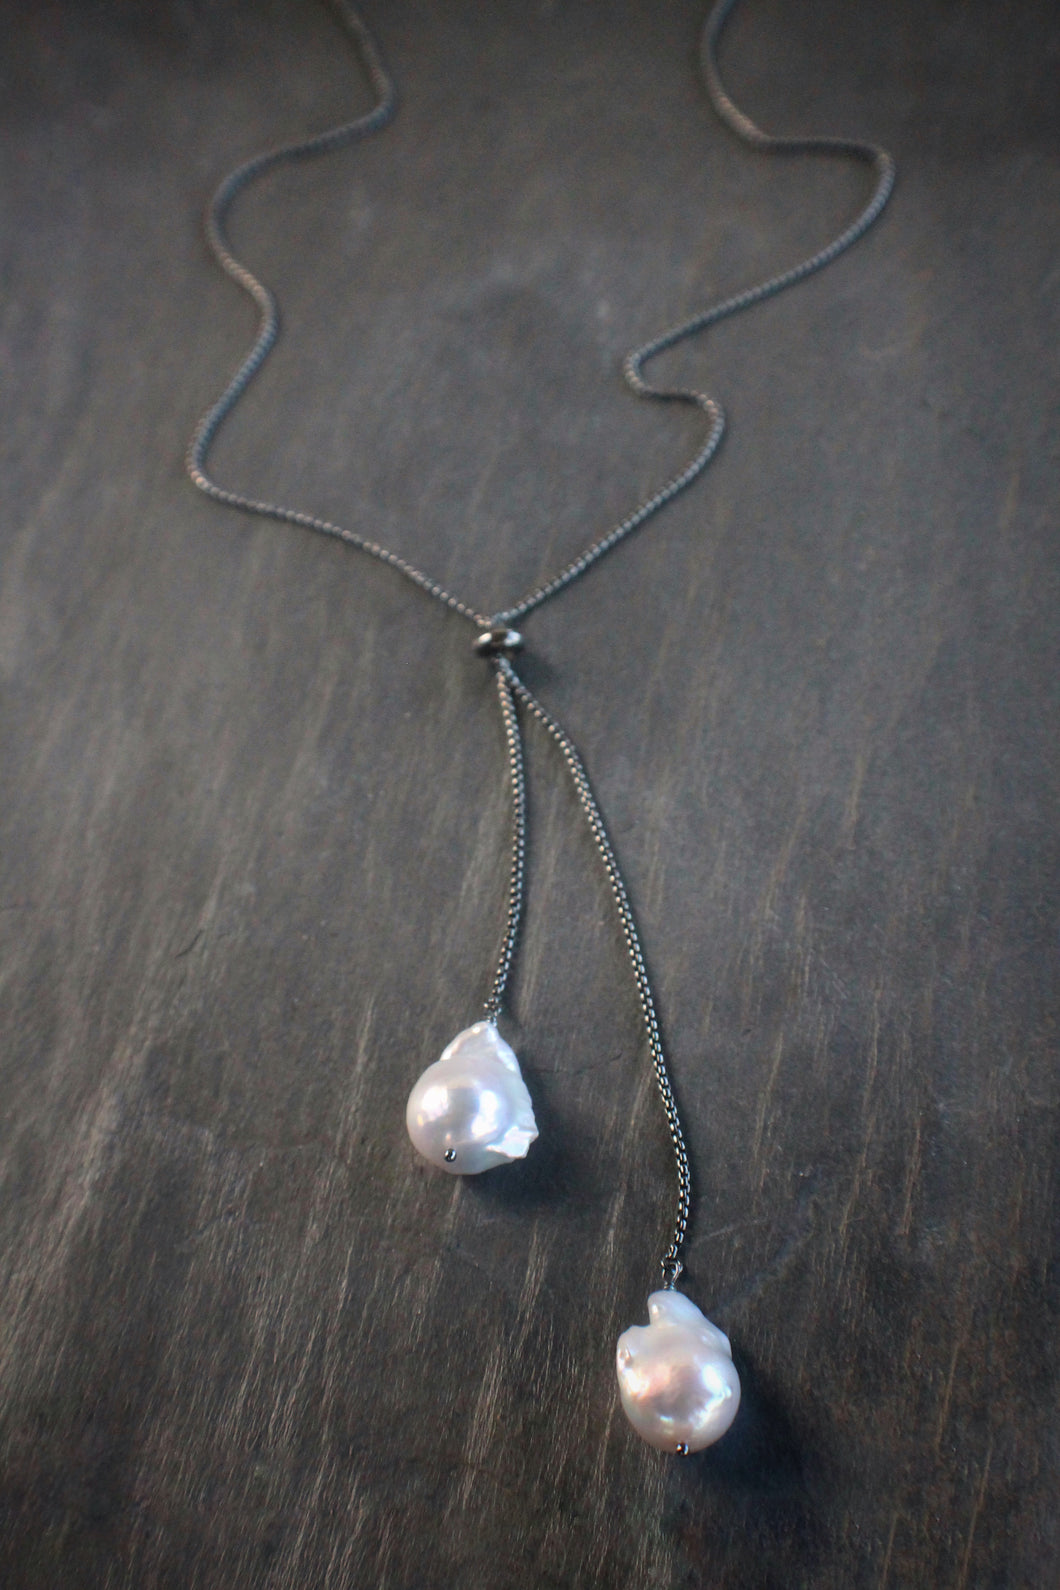 Sea and Stone Jewelry - Adjustable baroque pearl lariat necklace on blackened sterling silver.